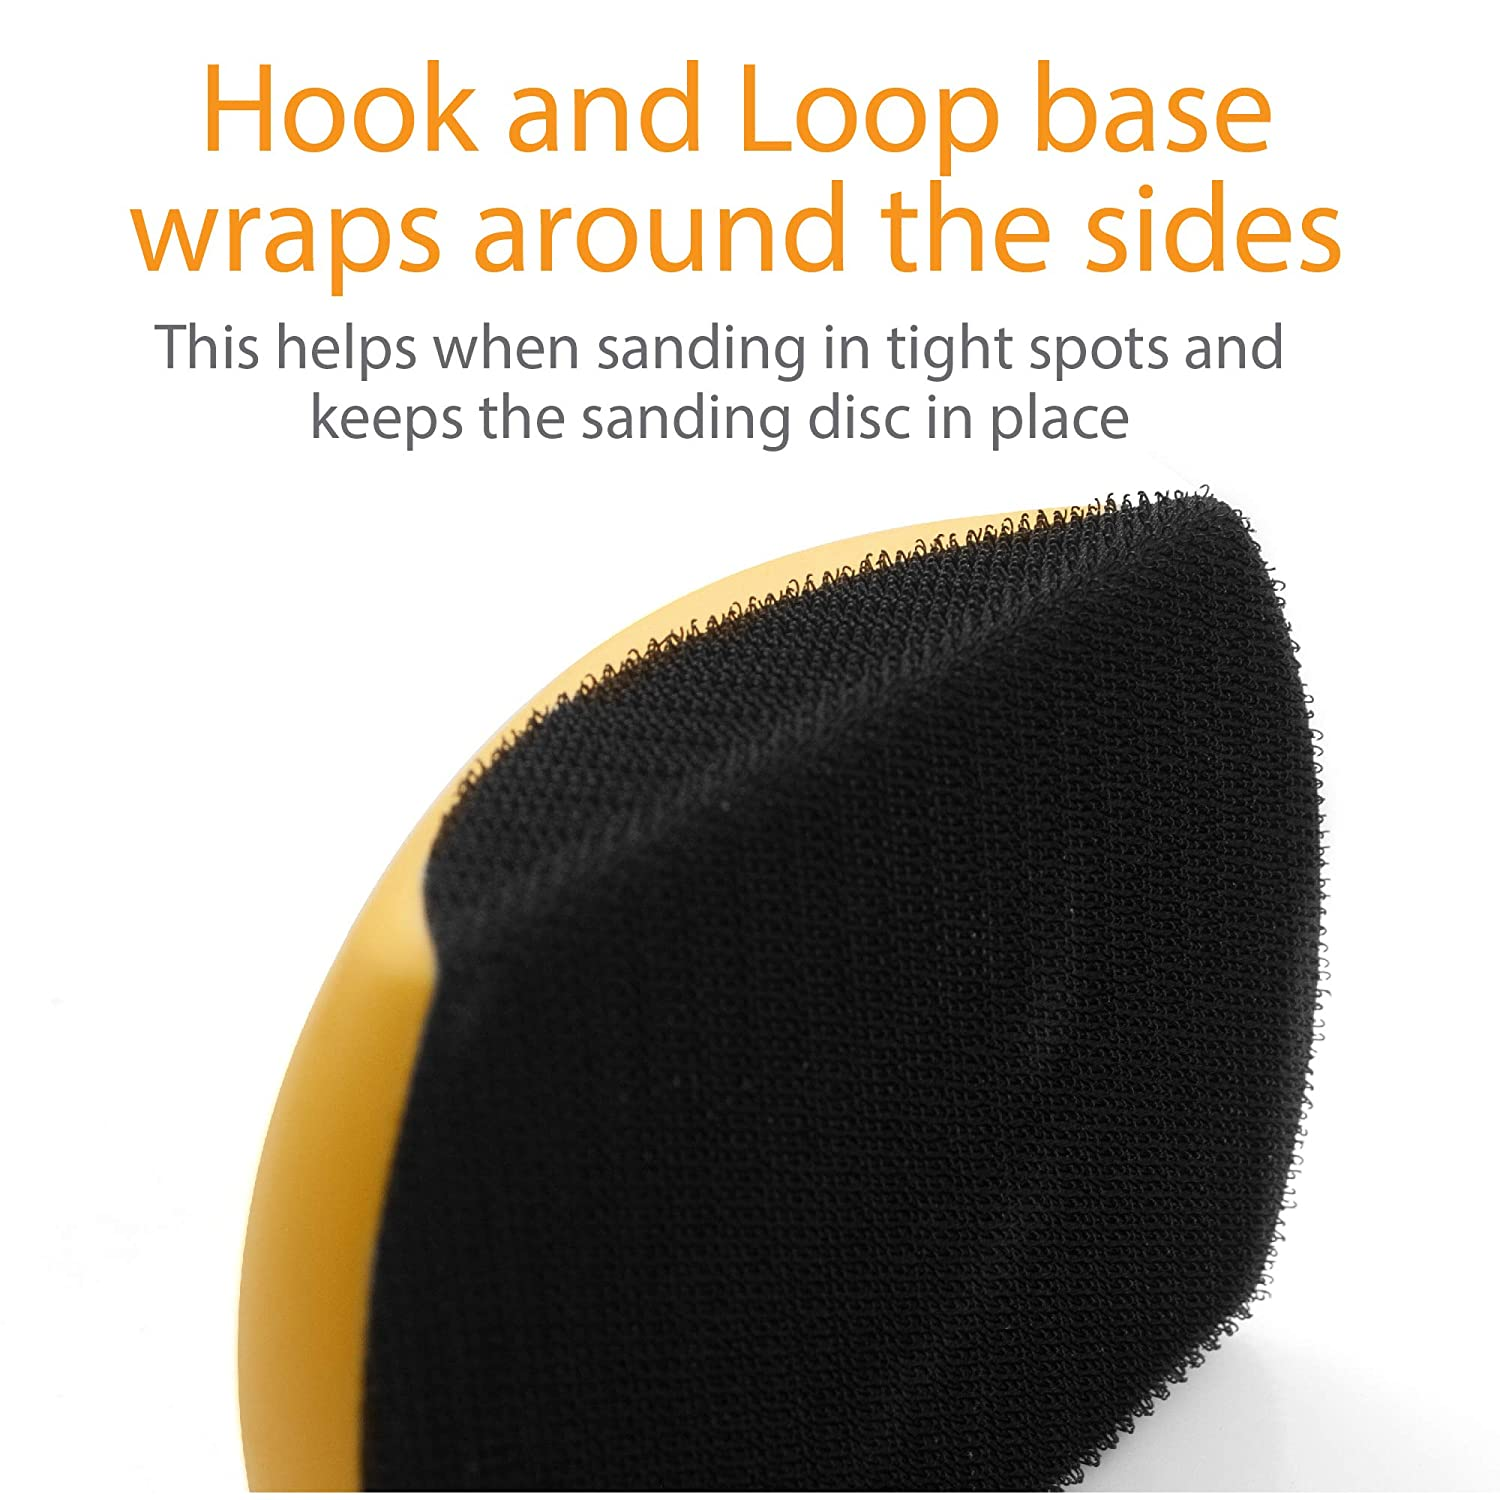 Furniture Restoration Ideal For Woodworking Accepts Standard Orbital Sanding Discs w//Hook and Loop Backing Home and Automotive Body Sanding Mouse Hook and Loop Sanding Block 5 Sanding Mouse